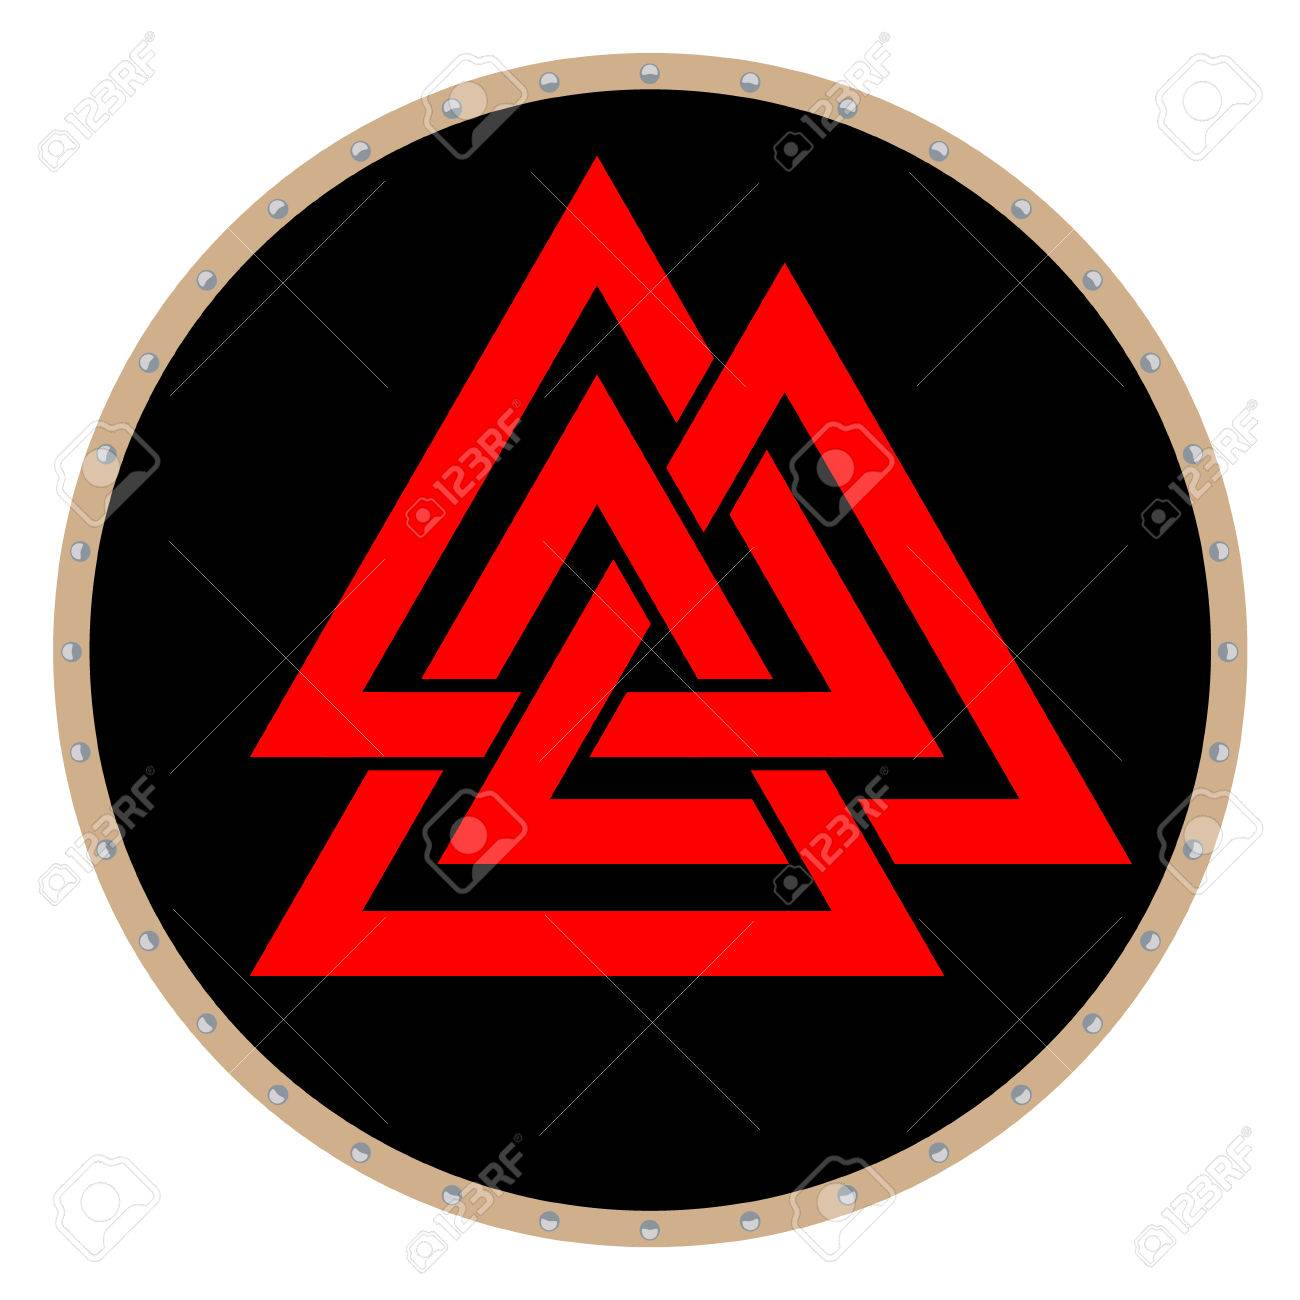 Valknut symbol of the world end of the tree yggdrasil sign of valknut symbol of the world end of the tree yggdrasil sign of the god odin buycottarizona